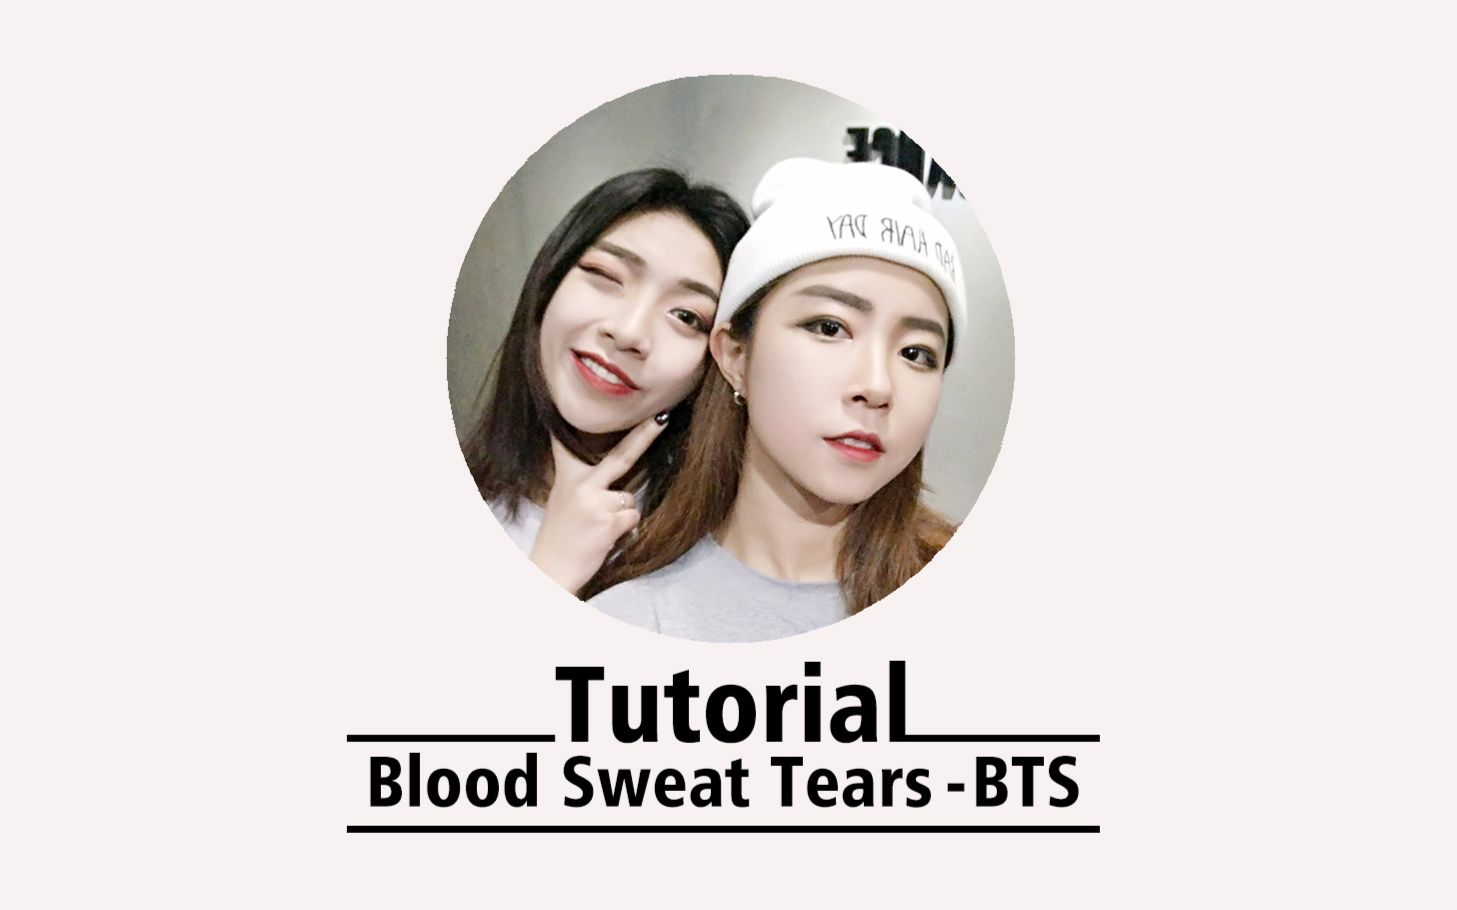 【防弹孙子团】BTS-血汗泪(Blood Sweat Tears) 舞蹈教程